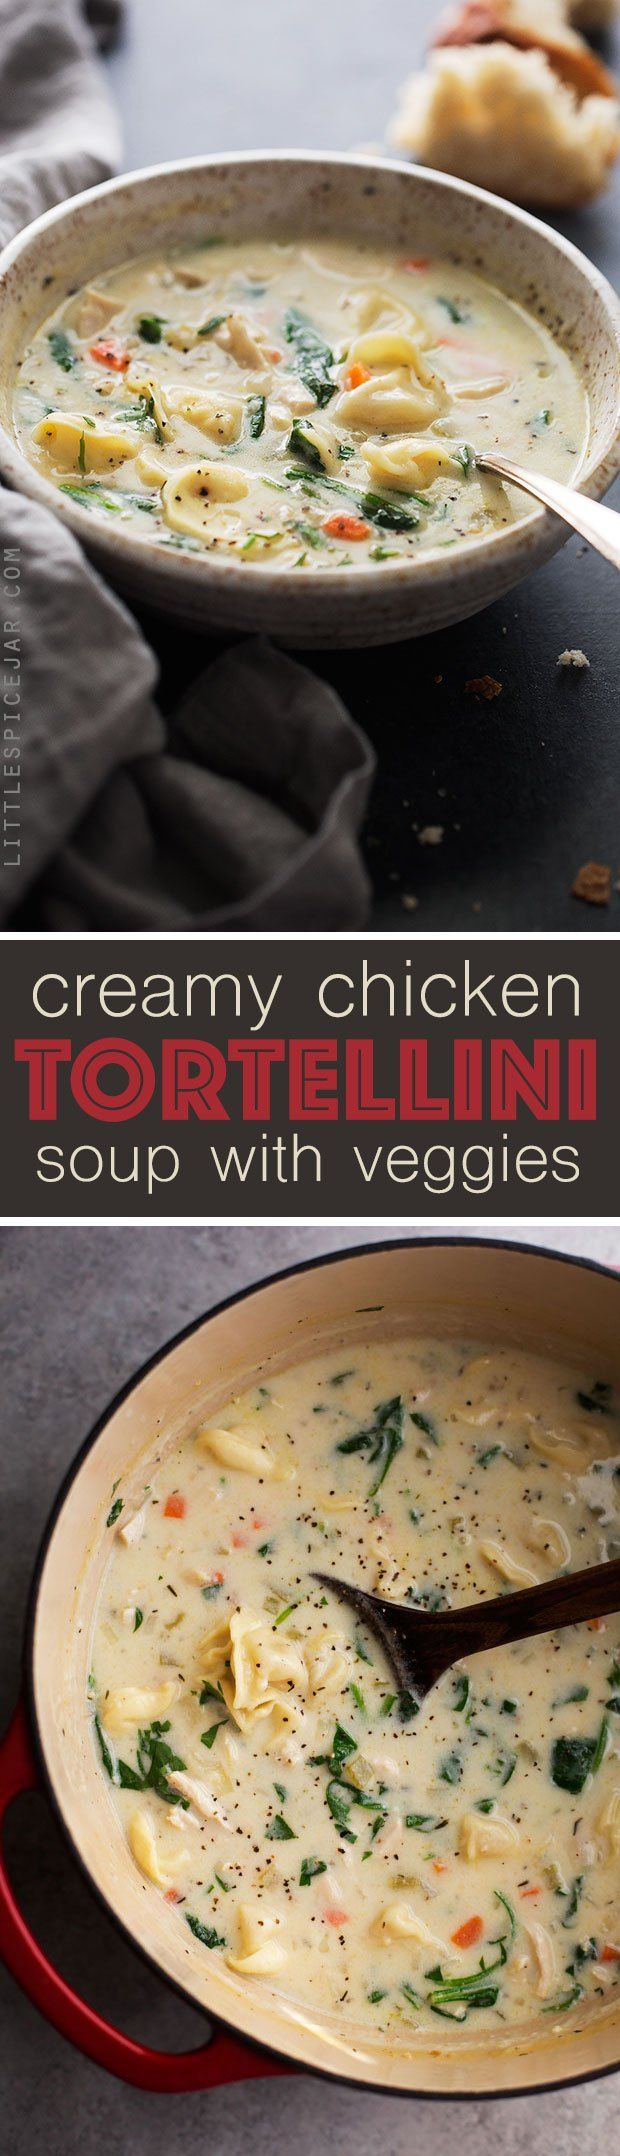 Creamy Chicken Tortellini Soup - a creamy chicken soup with tons of carrots, baby spinach, and cheesy tortellini. So perfect for fall! #chickennoodlesoup #chickensoup #chickentortellinisoup | http://Littlespicejar.com